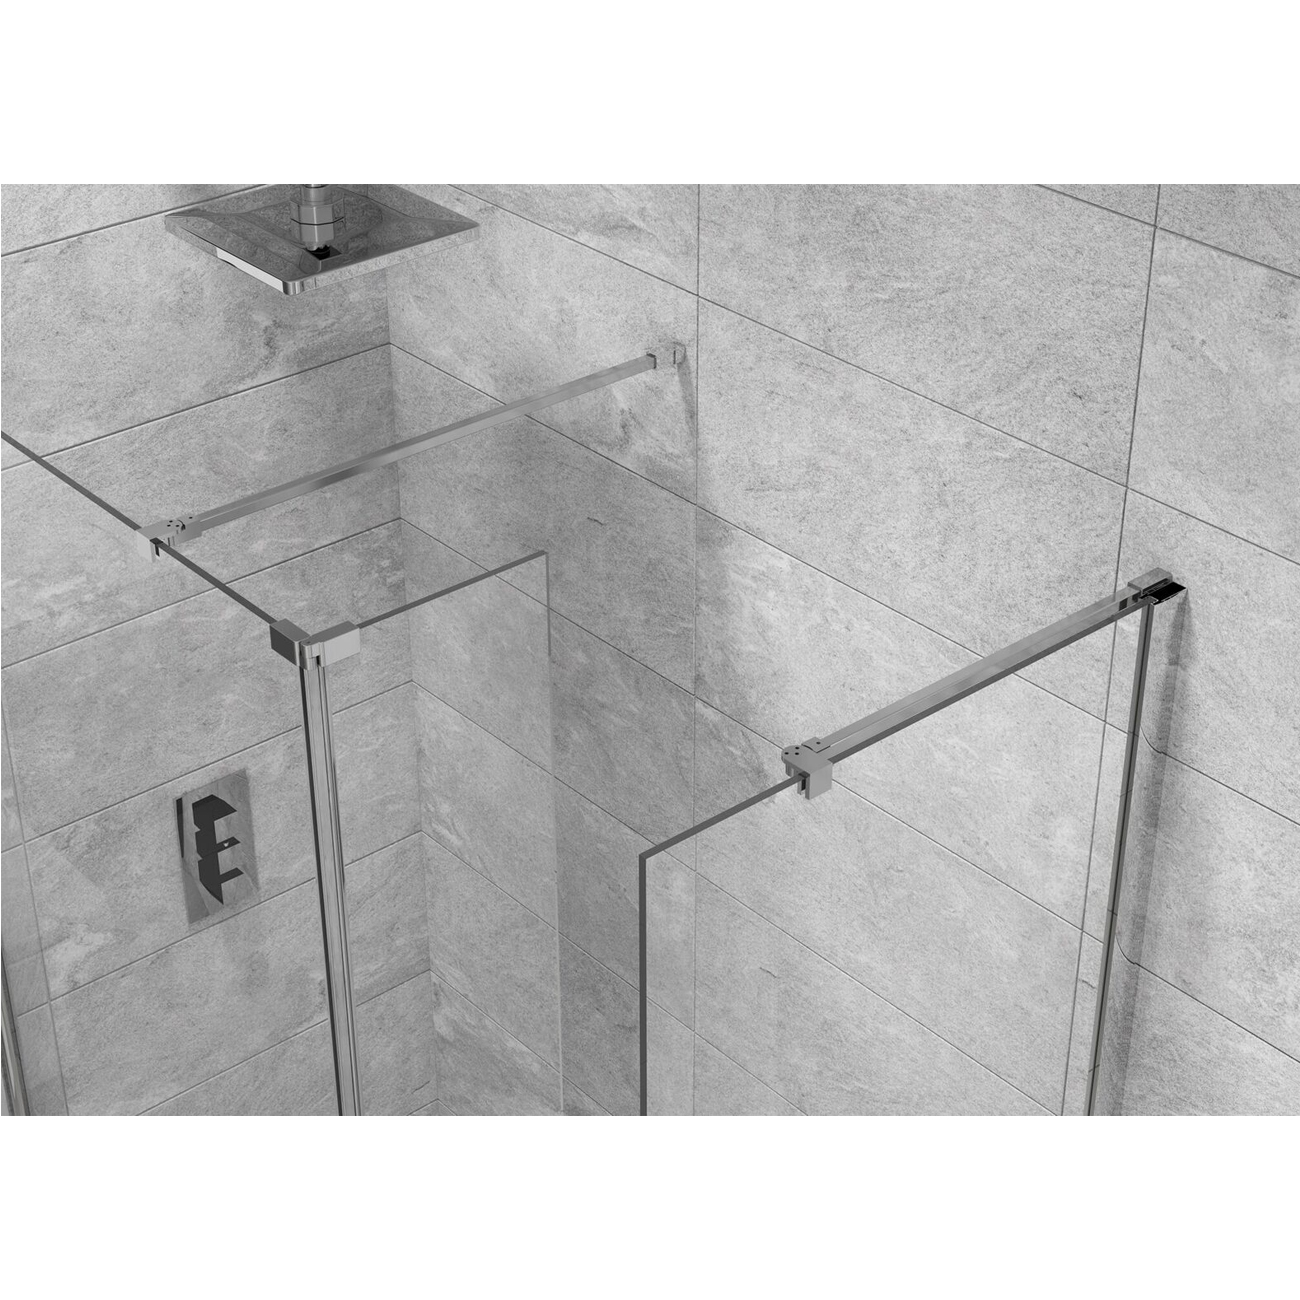 Cali Lana Easy Clean Wet Room Glass Panel 700mm Wide - 10mm Glass-4